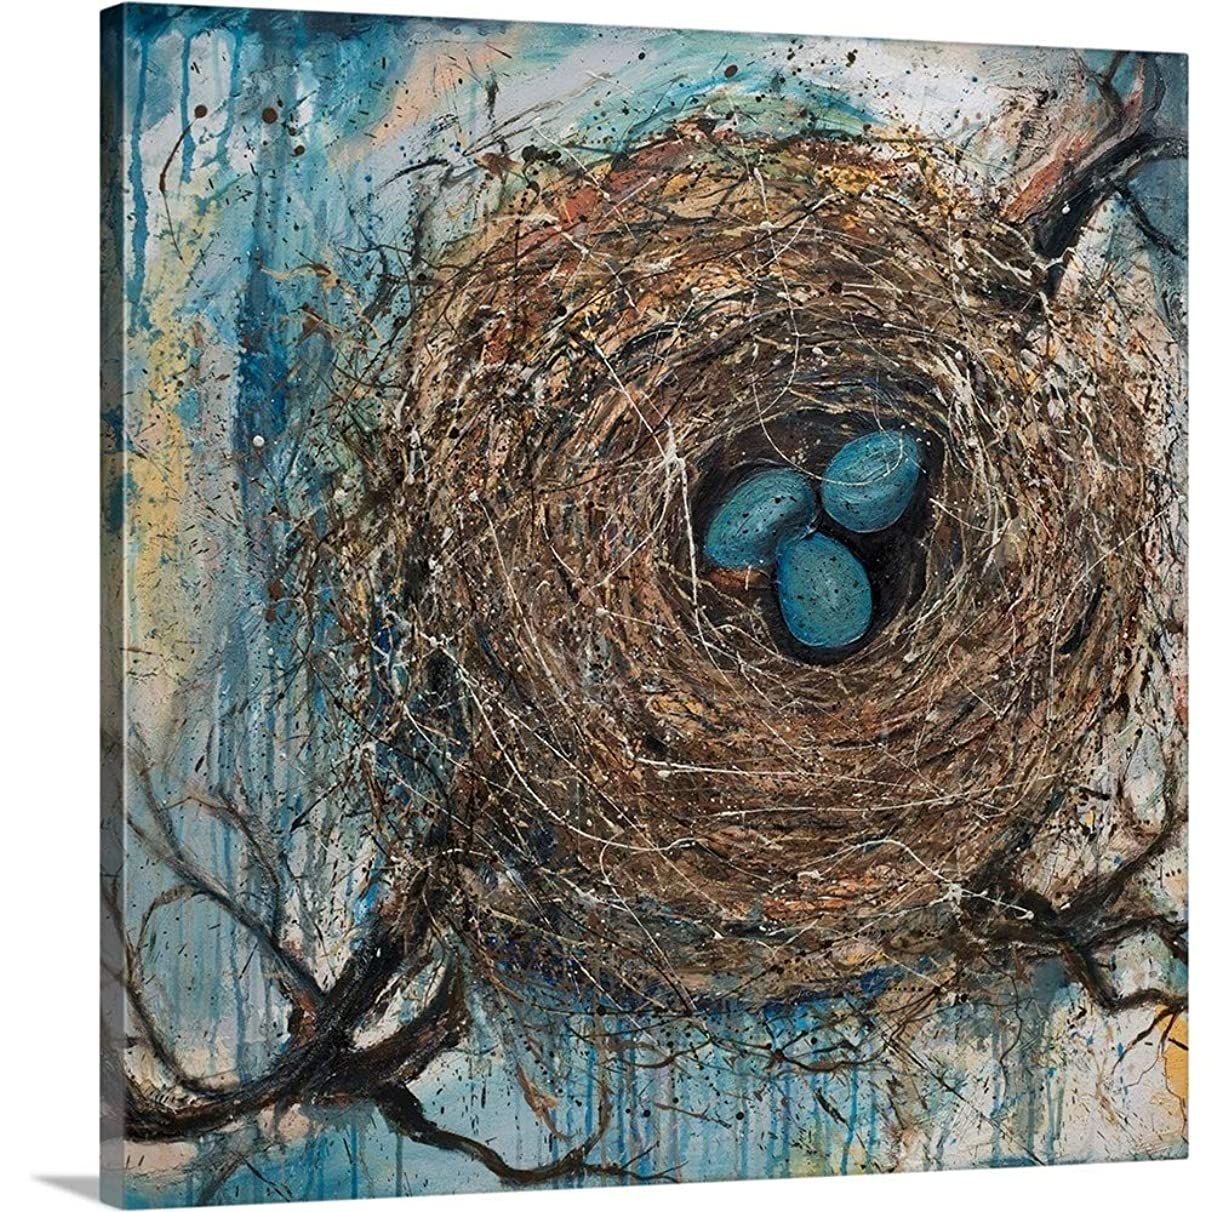 GREATBIGCANVAS Gallery-Wrapped Canvas Entitled New Beginnings by Jodi Monahan 10